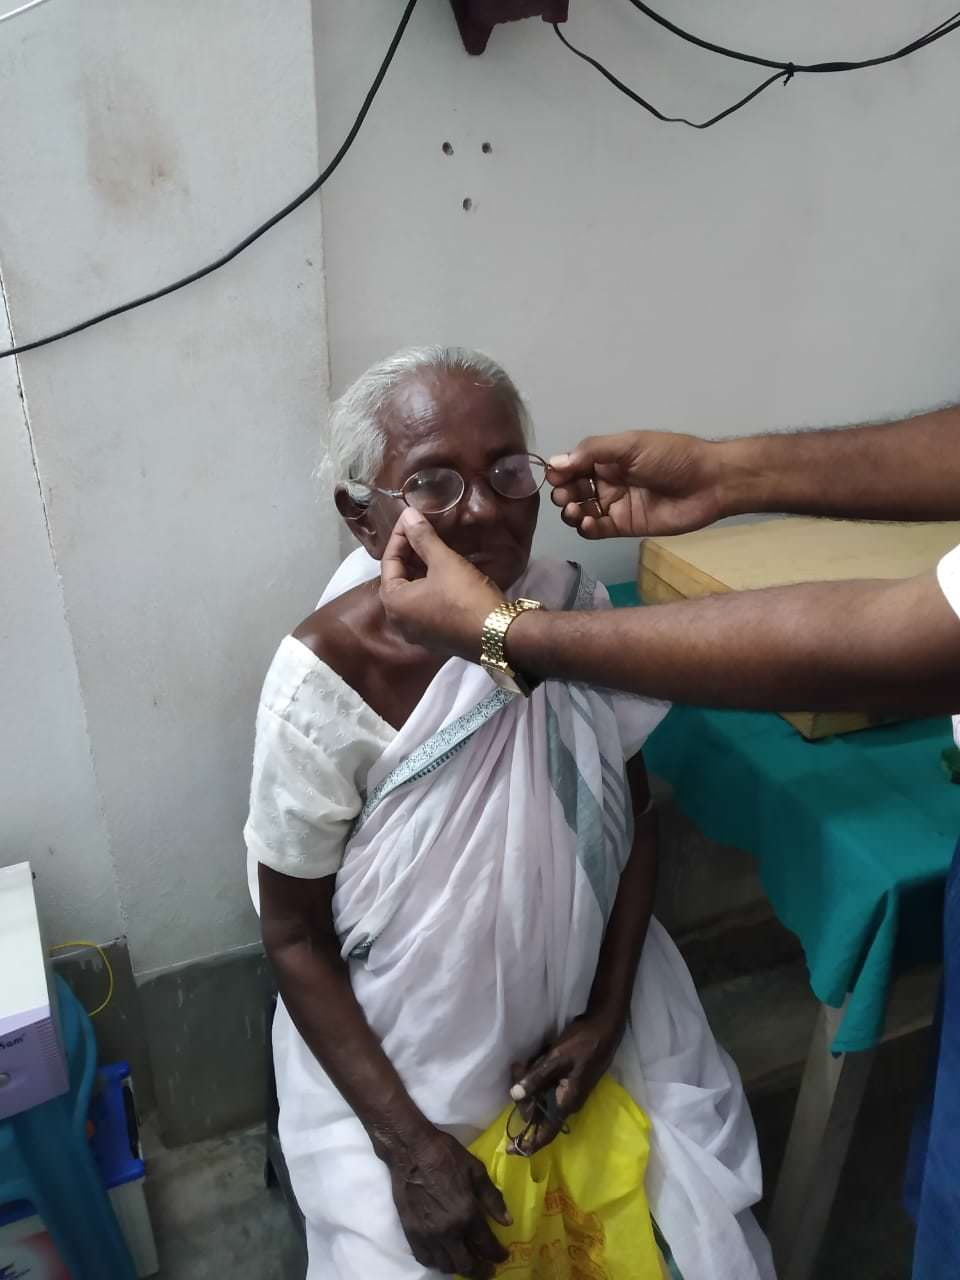 2019-11-11-spectaclefitting-ruralhealthcarefoundationcarefoundation.jpeg